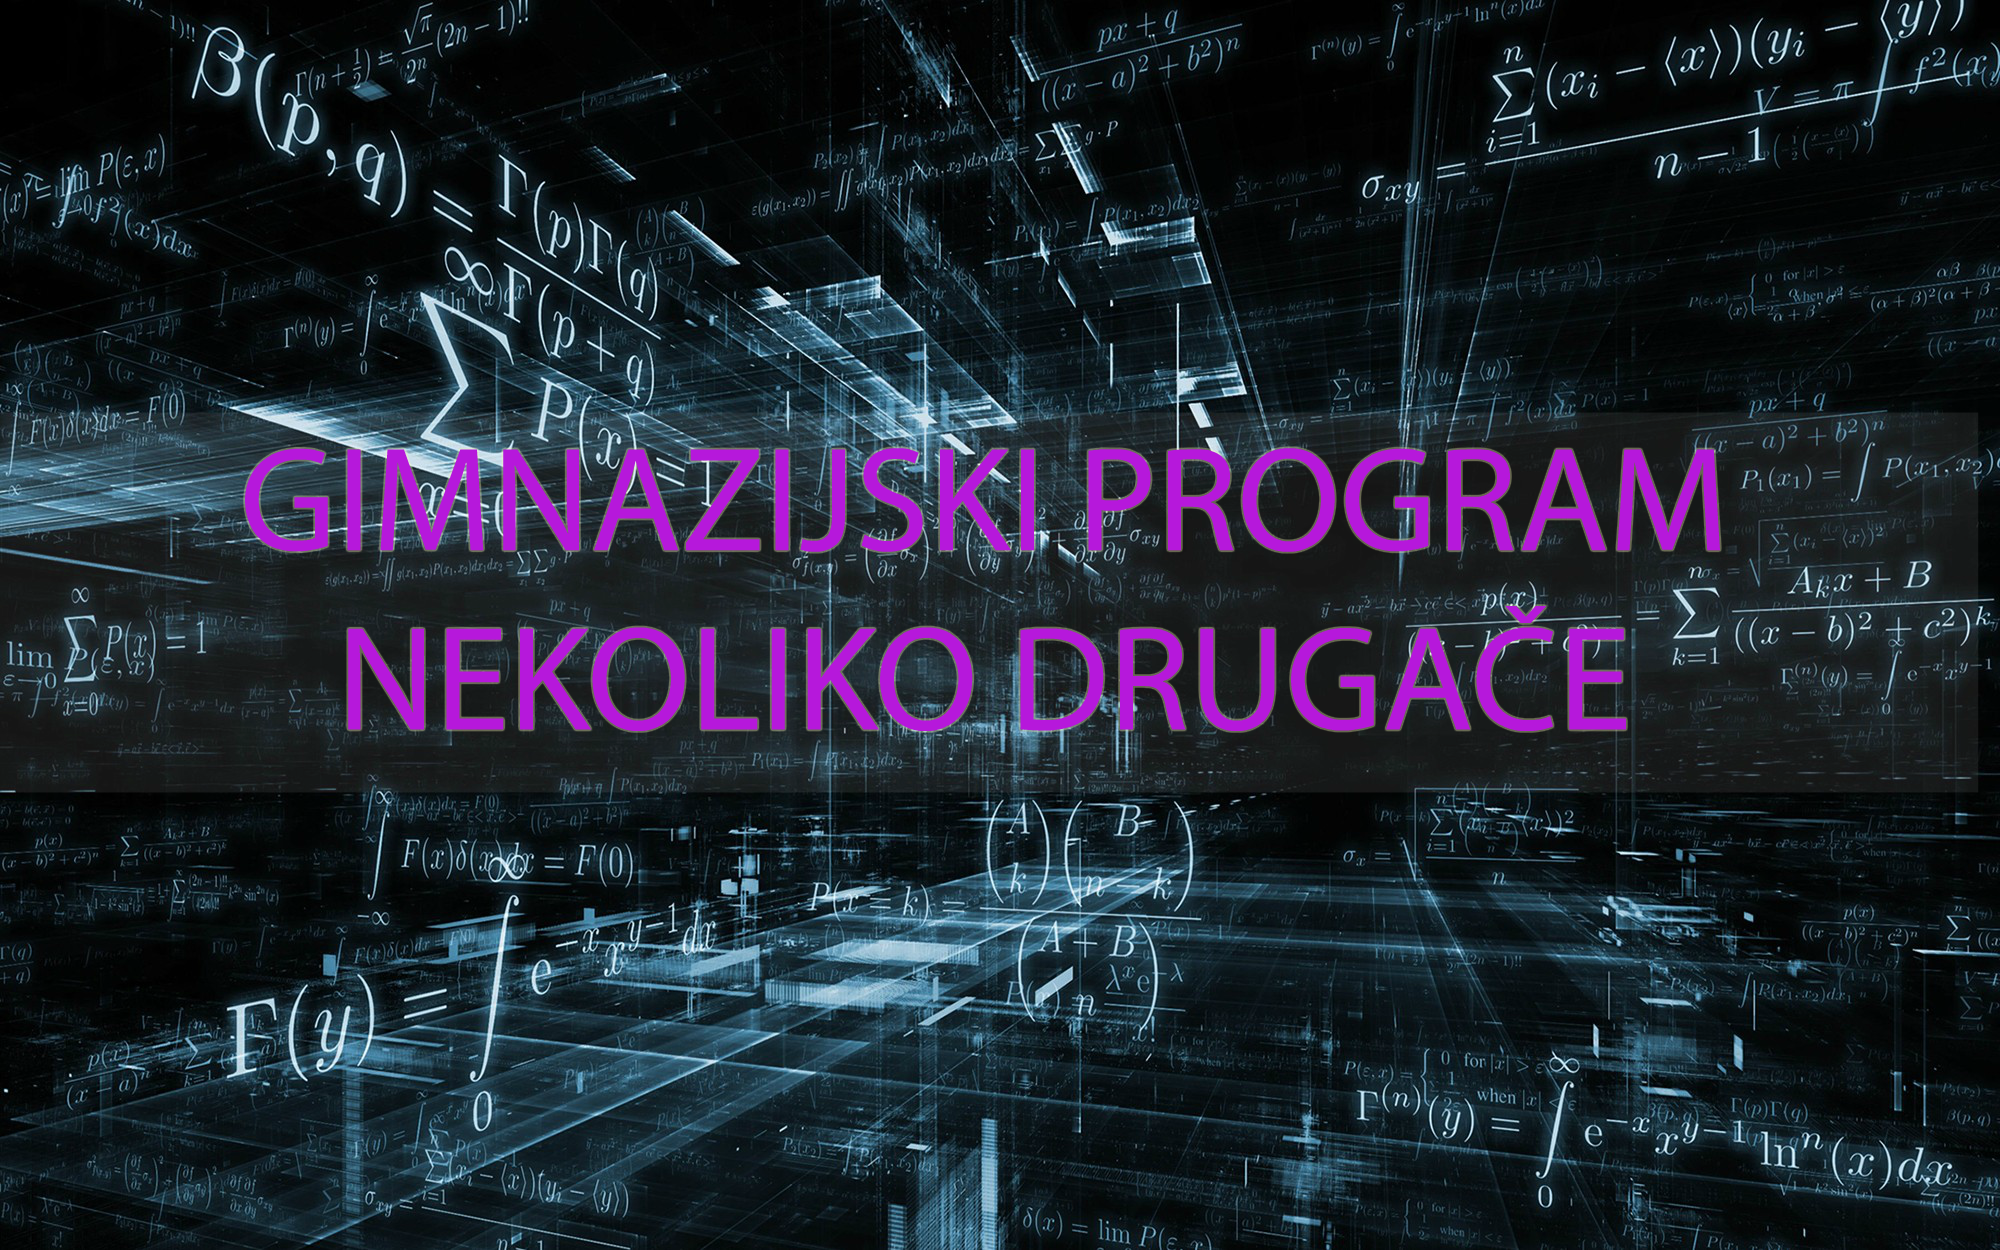 Gimnazijski program nekoliko drugače